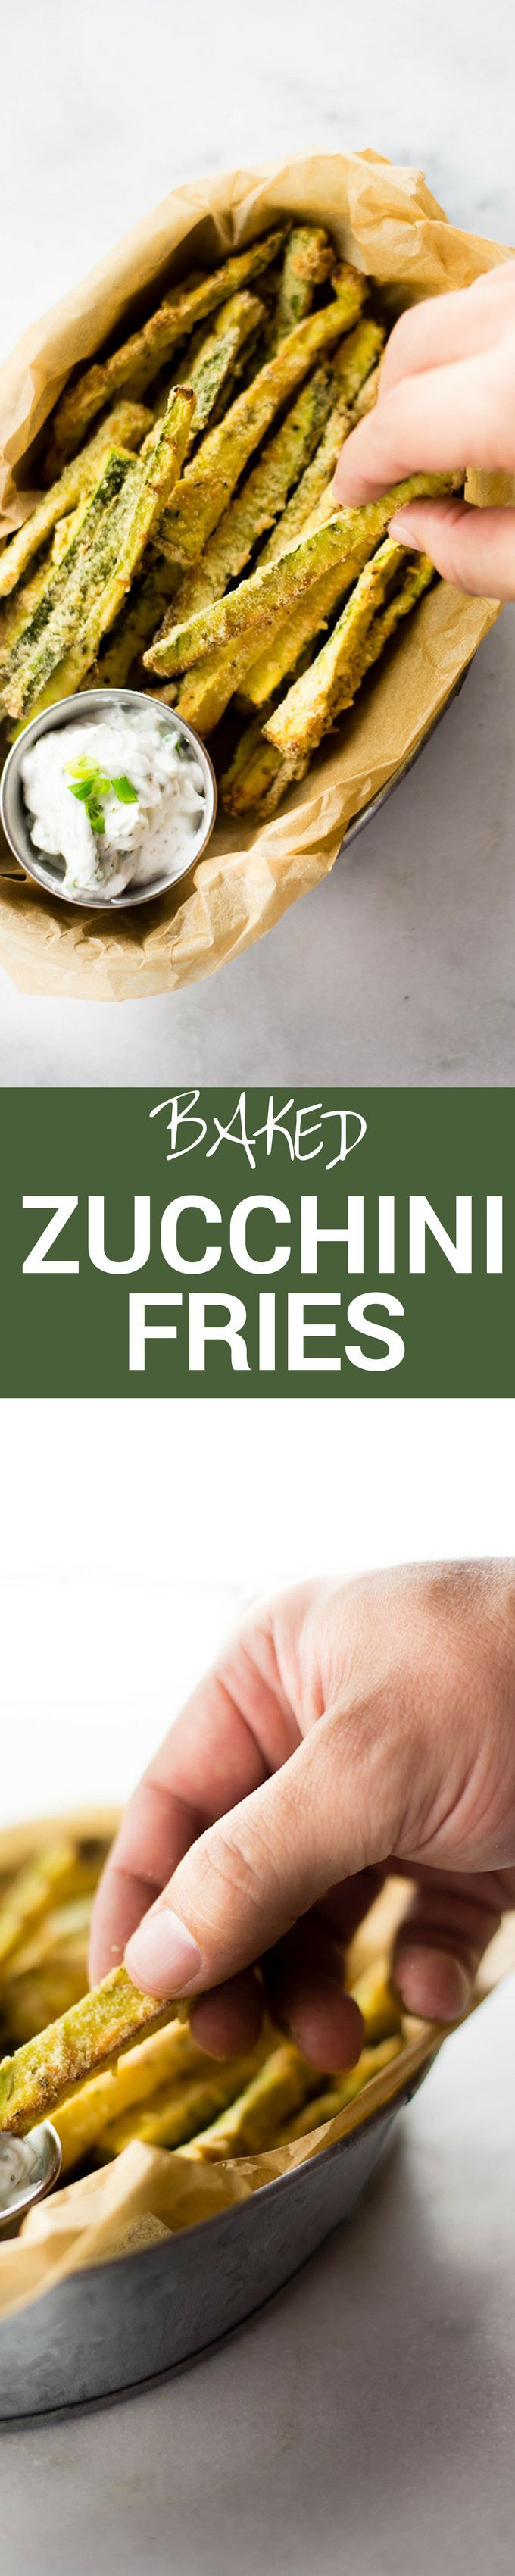 These tasty baked zucchini fries are a fun and healthy way to eat your veggies | A Sweet Pea Chef